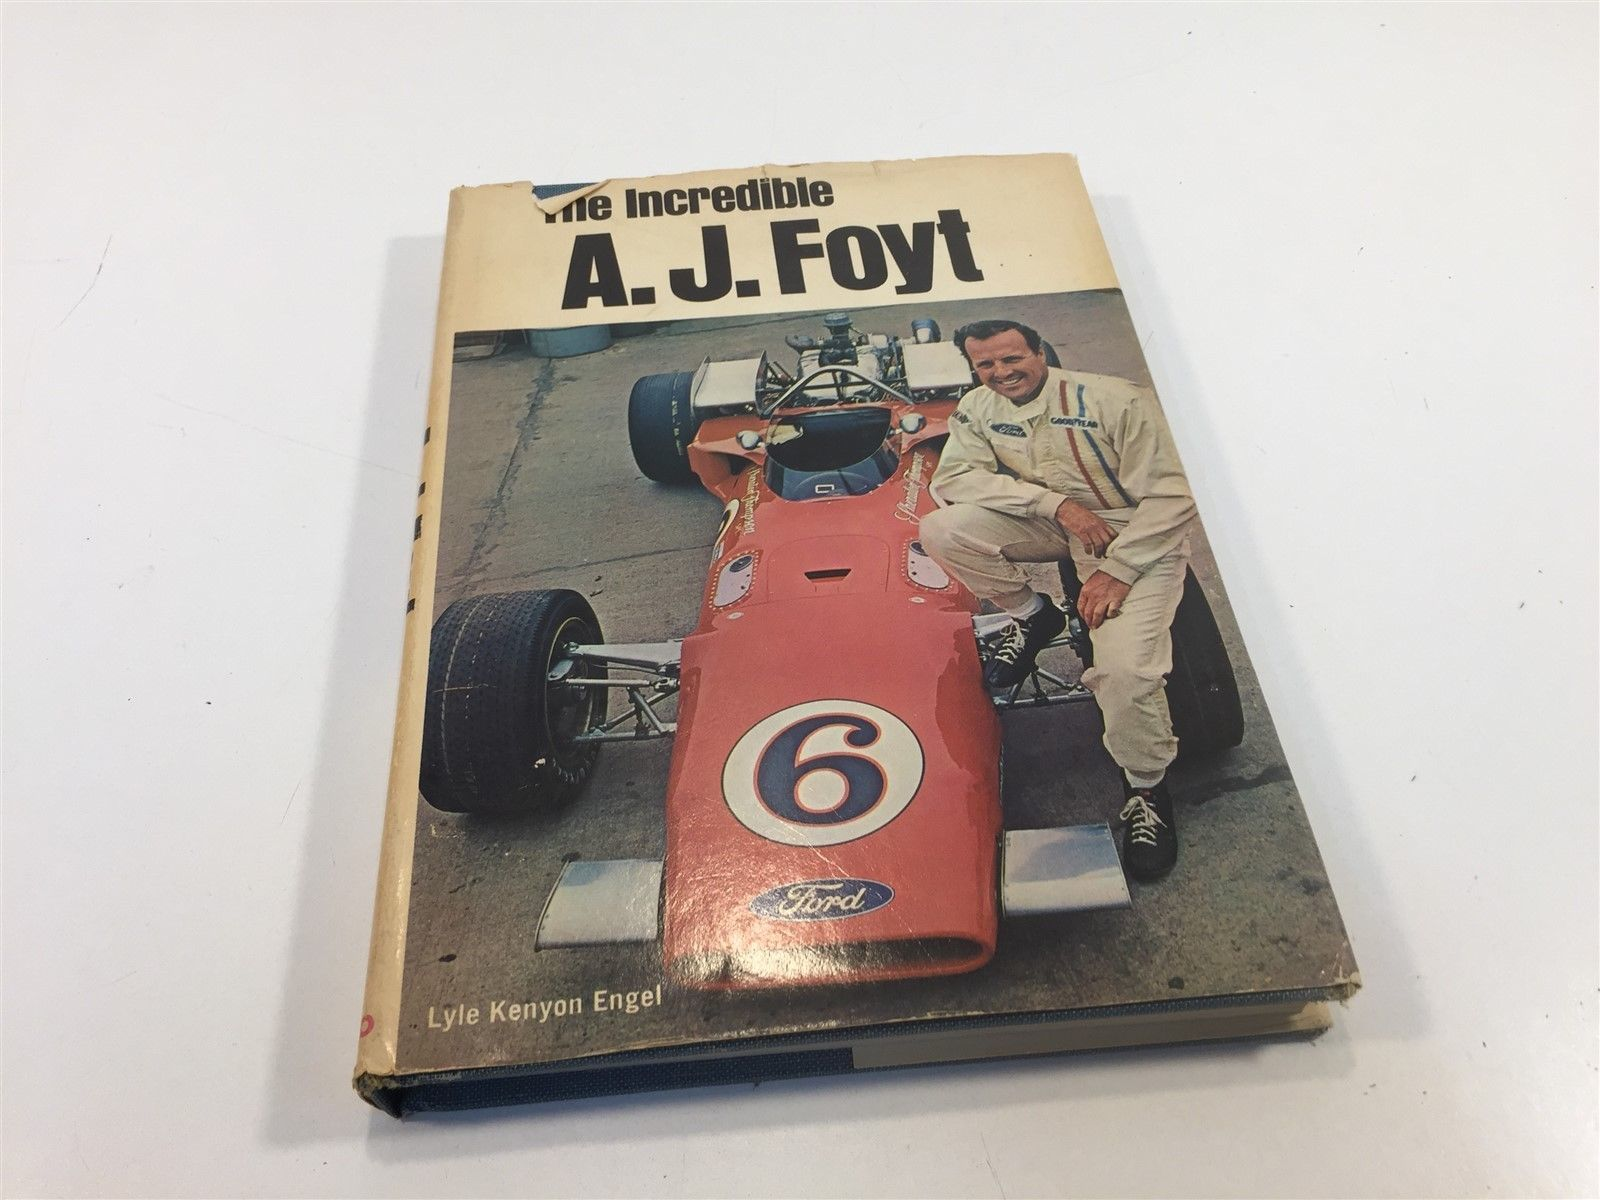 The Incredible A.J. Foyt by Lyle Kenyon Engel HC/DJ 1970 Signed?